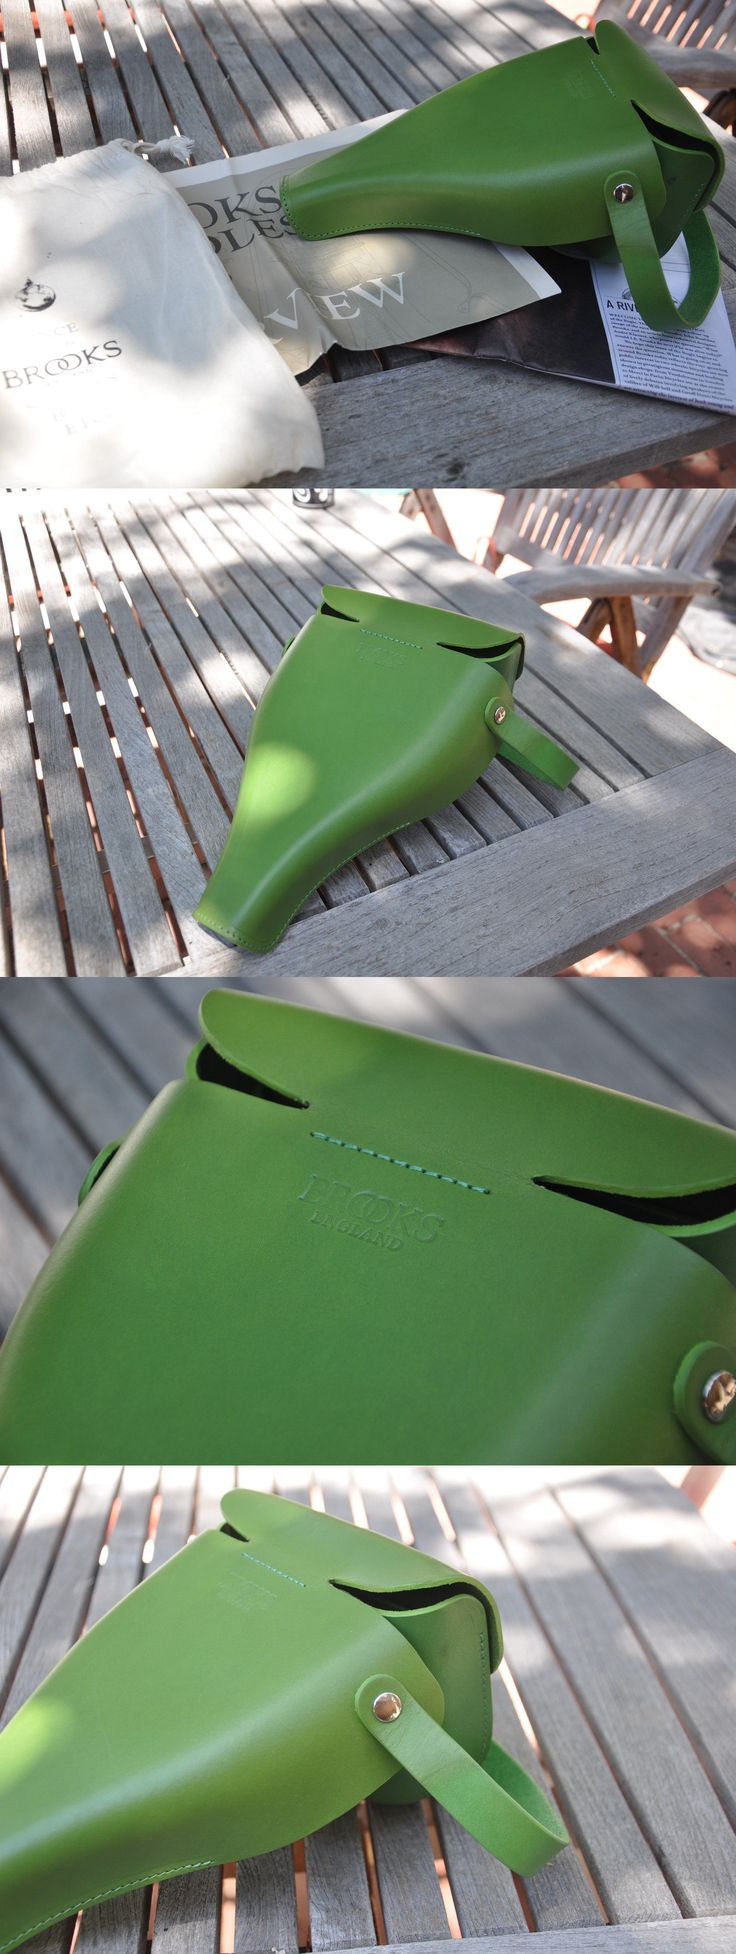 Saddle Covers Seat Covers 177838: Brooks Victoria Saddle Bag Handbag Purse Apple Green -> BUY IT NOW ONLY: $30 on eBay!